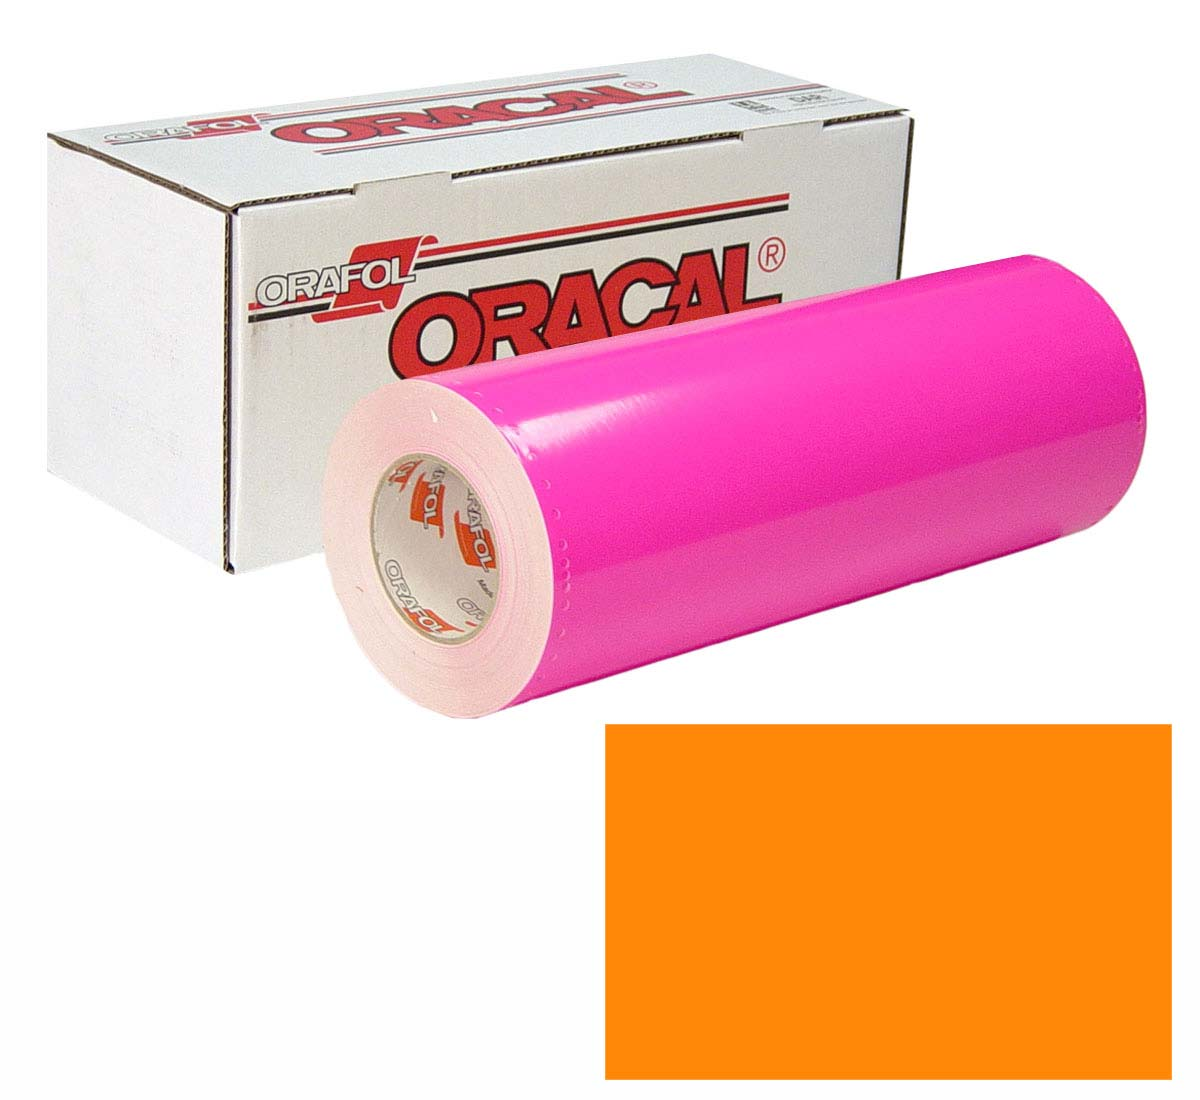 ORACAL 7510 Fluor Unp 24In X10Yd 037 Orange